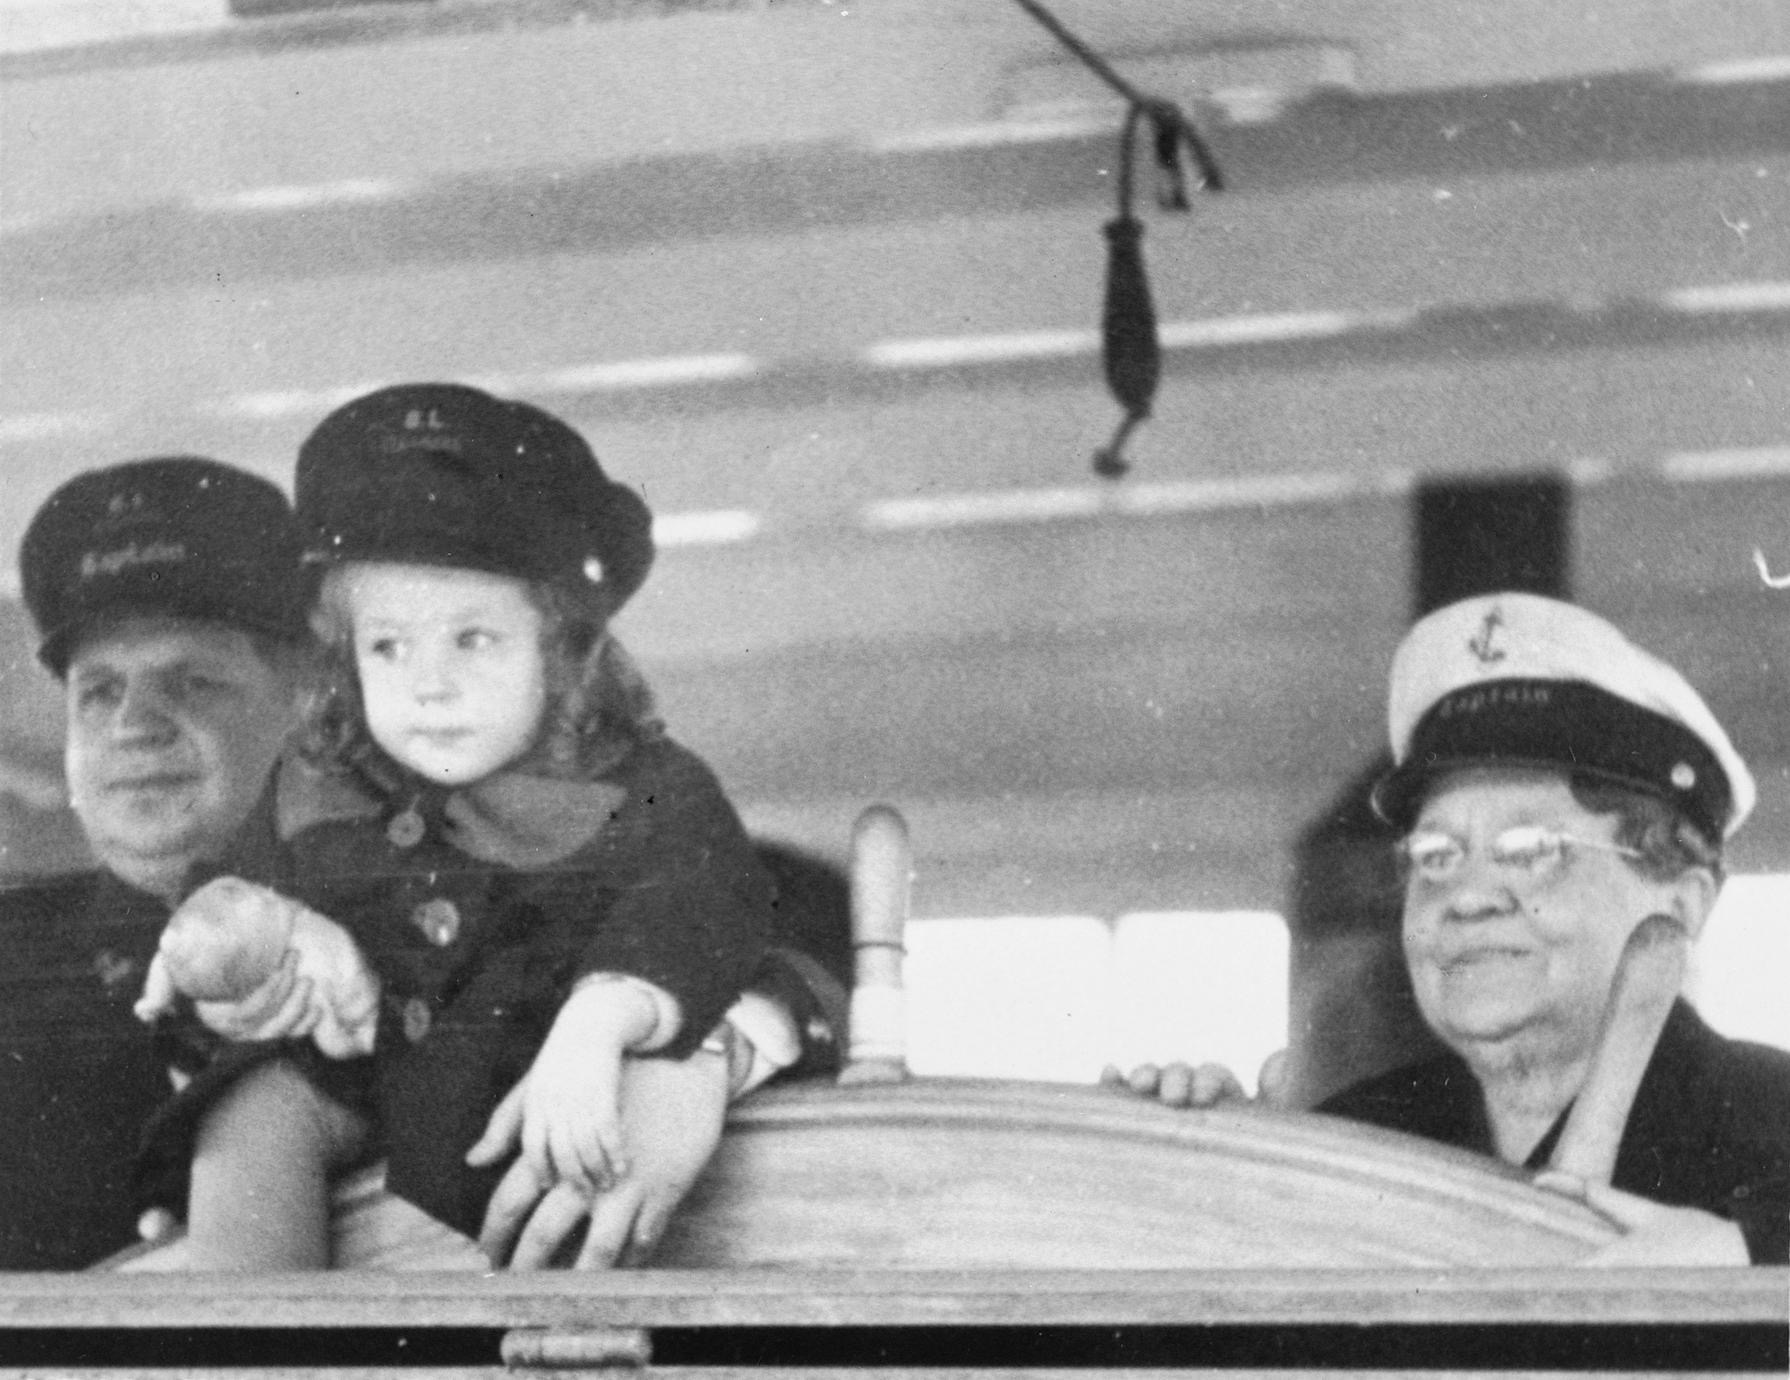 Capt. Mary and her son Capt. Tom holding his daughter Mary